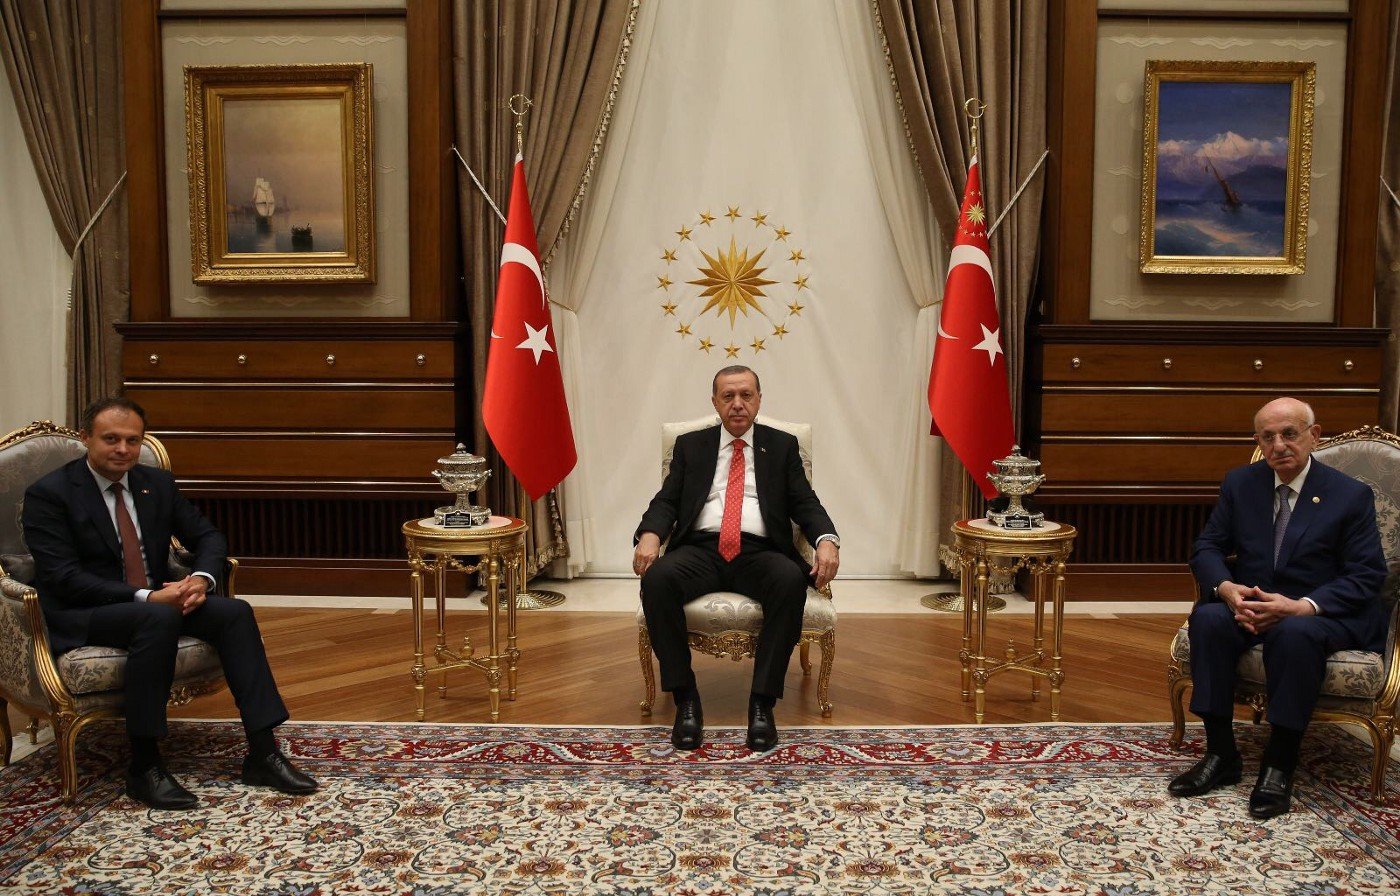 How Erdoğan abducted seven teachers from my country